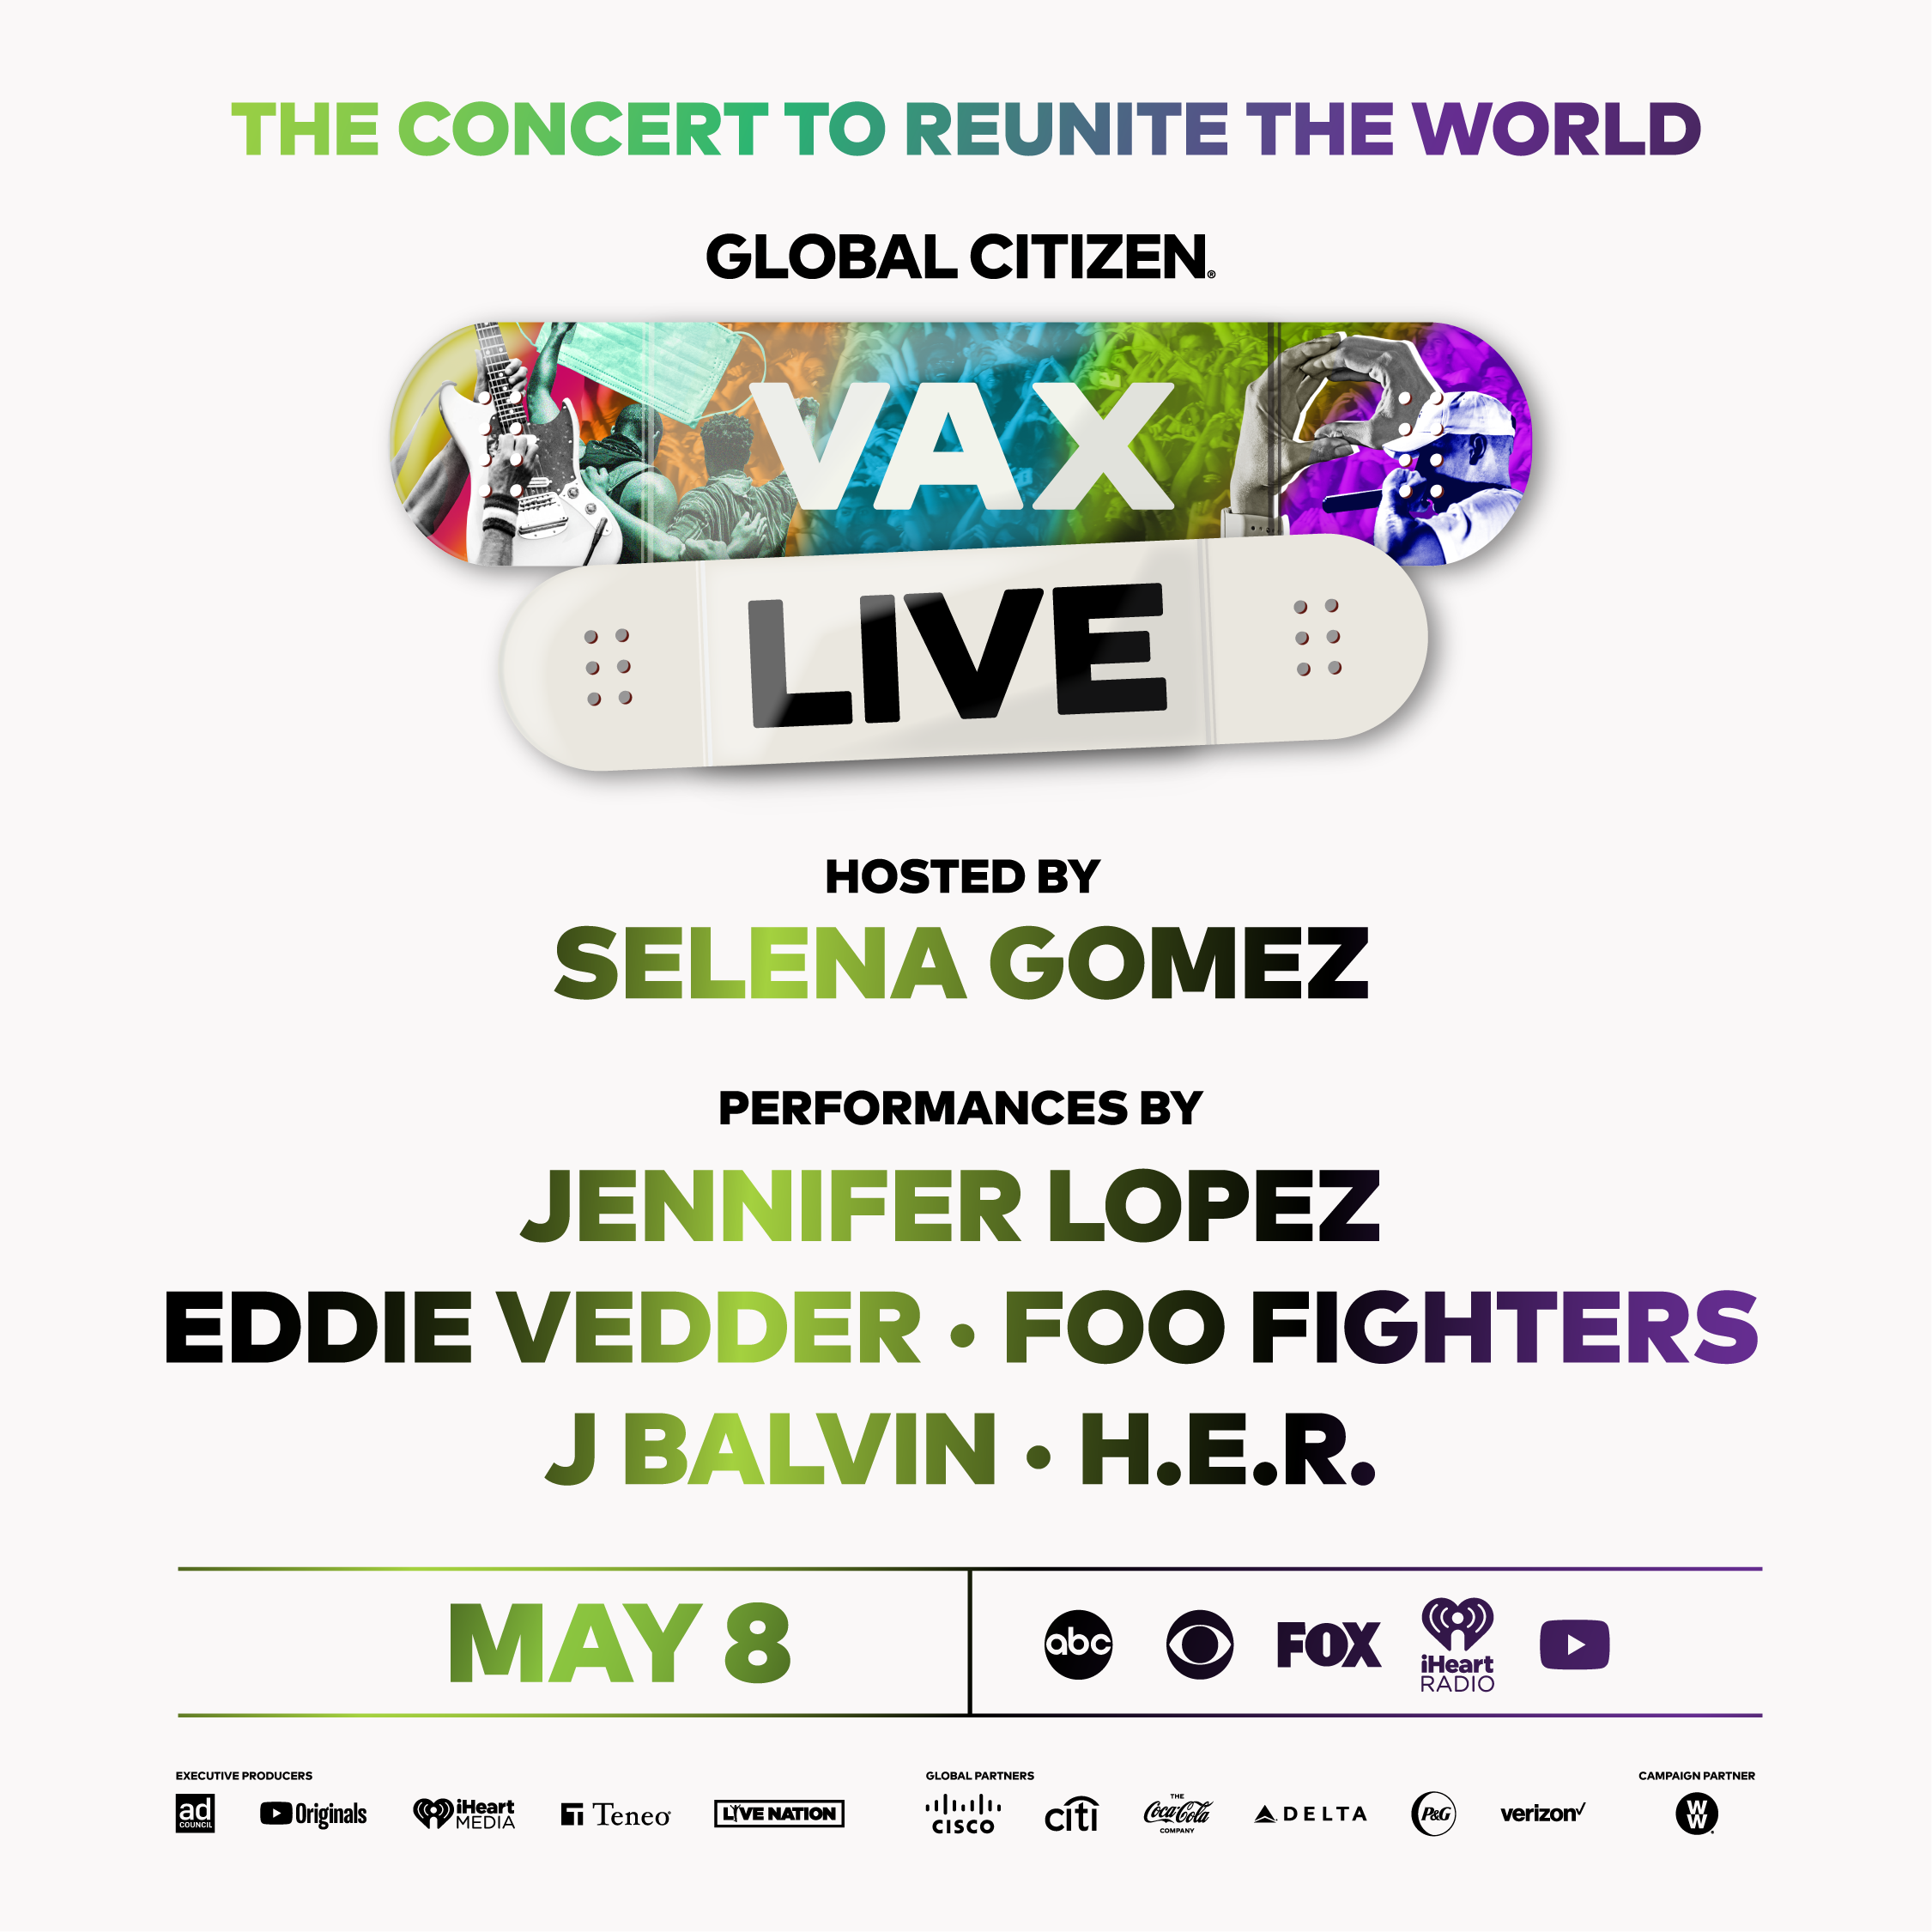 VAX LIVE': The Concert to Reunite the World and Ensure Everyone Has Access  to COVID-19 Vaccines